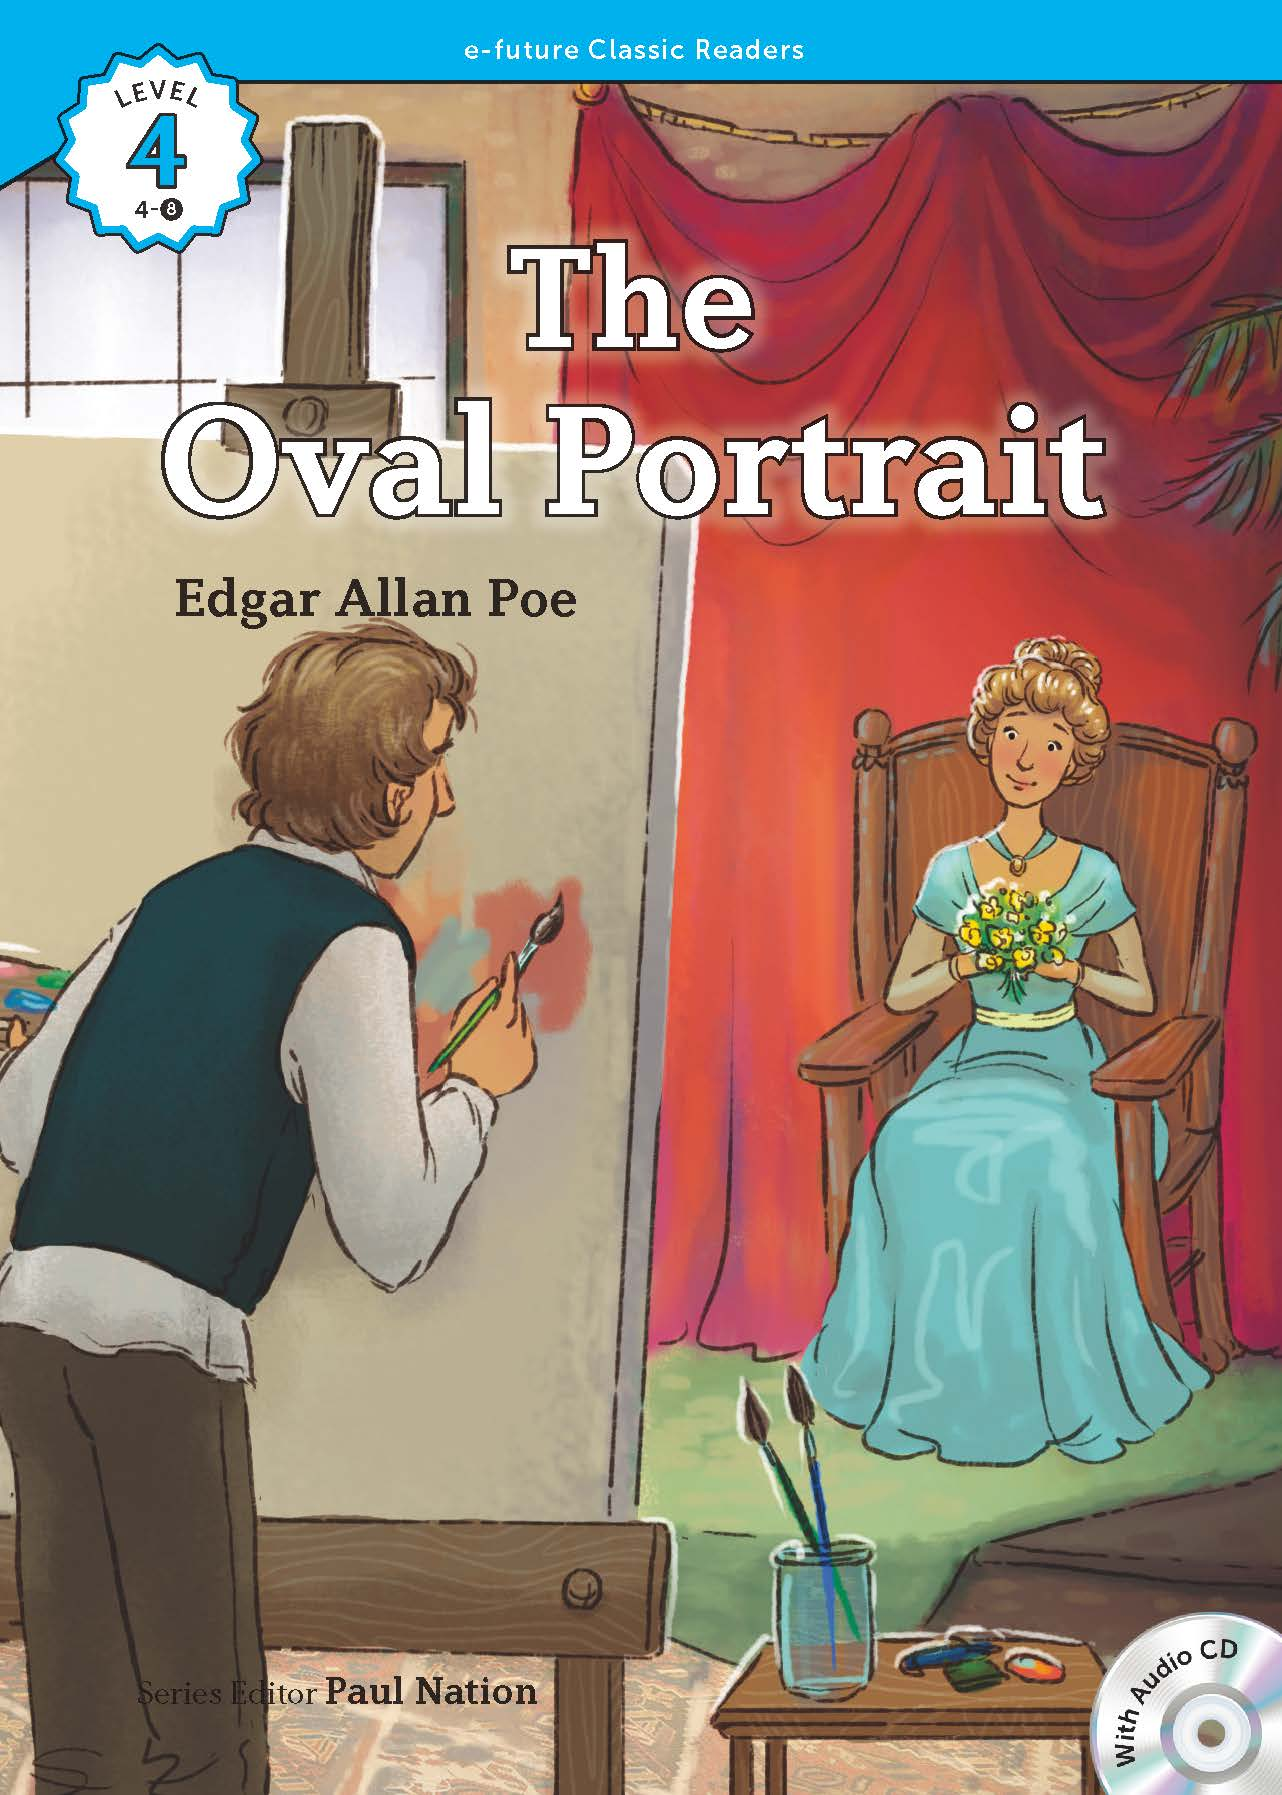 EF Classic Readers Level 4, Book 8:  The Oval Portrait